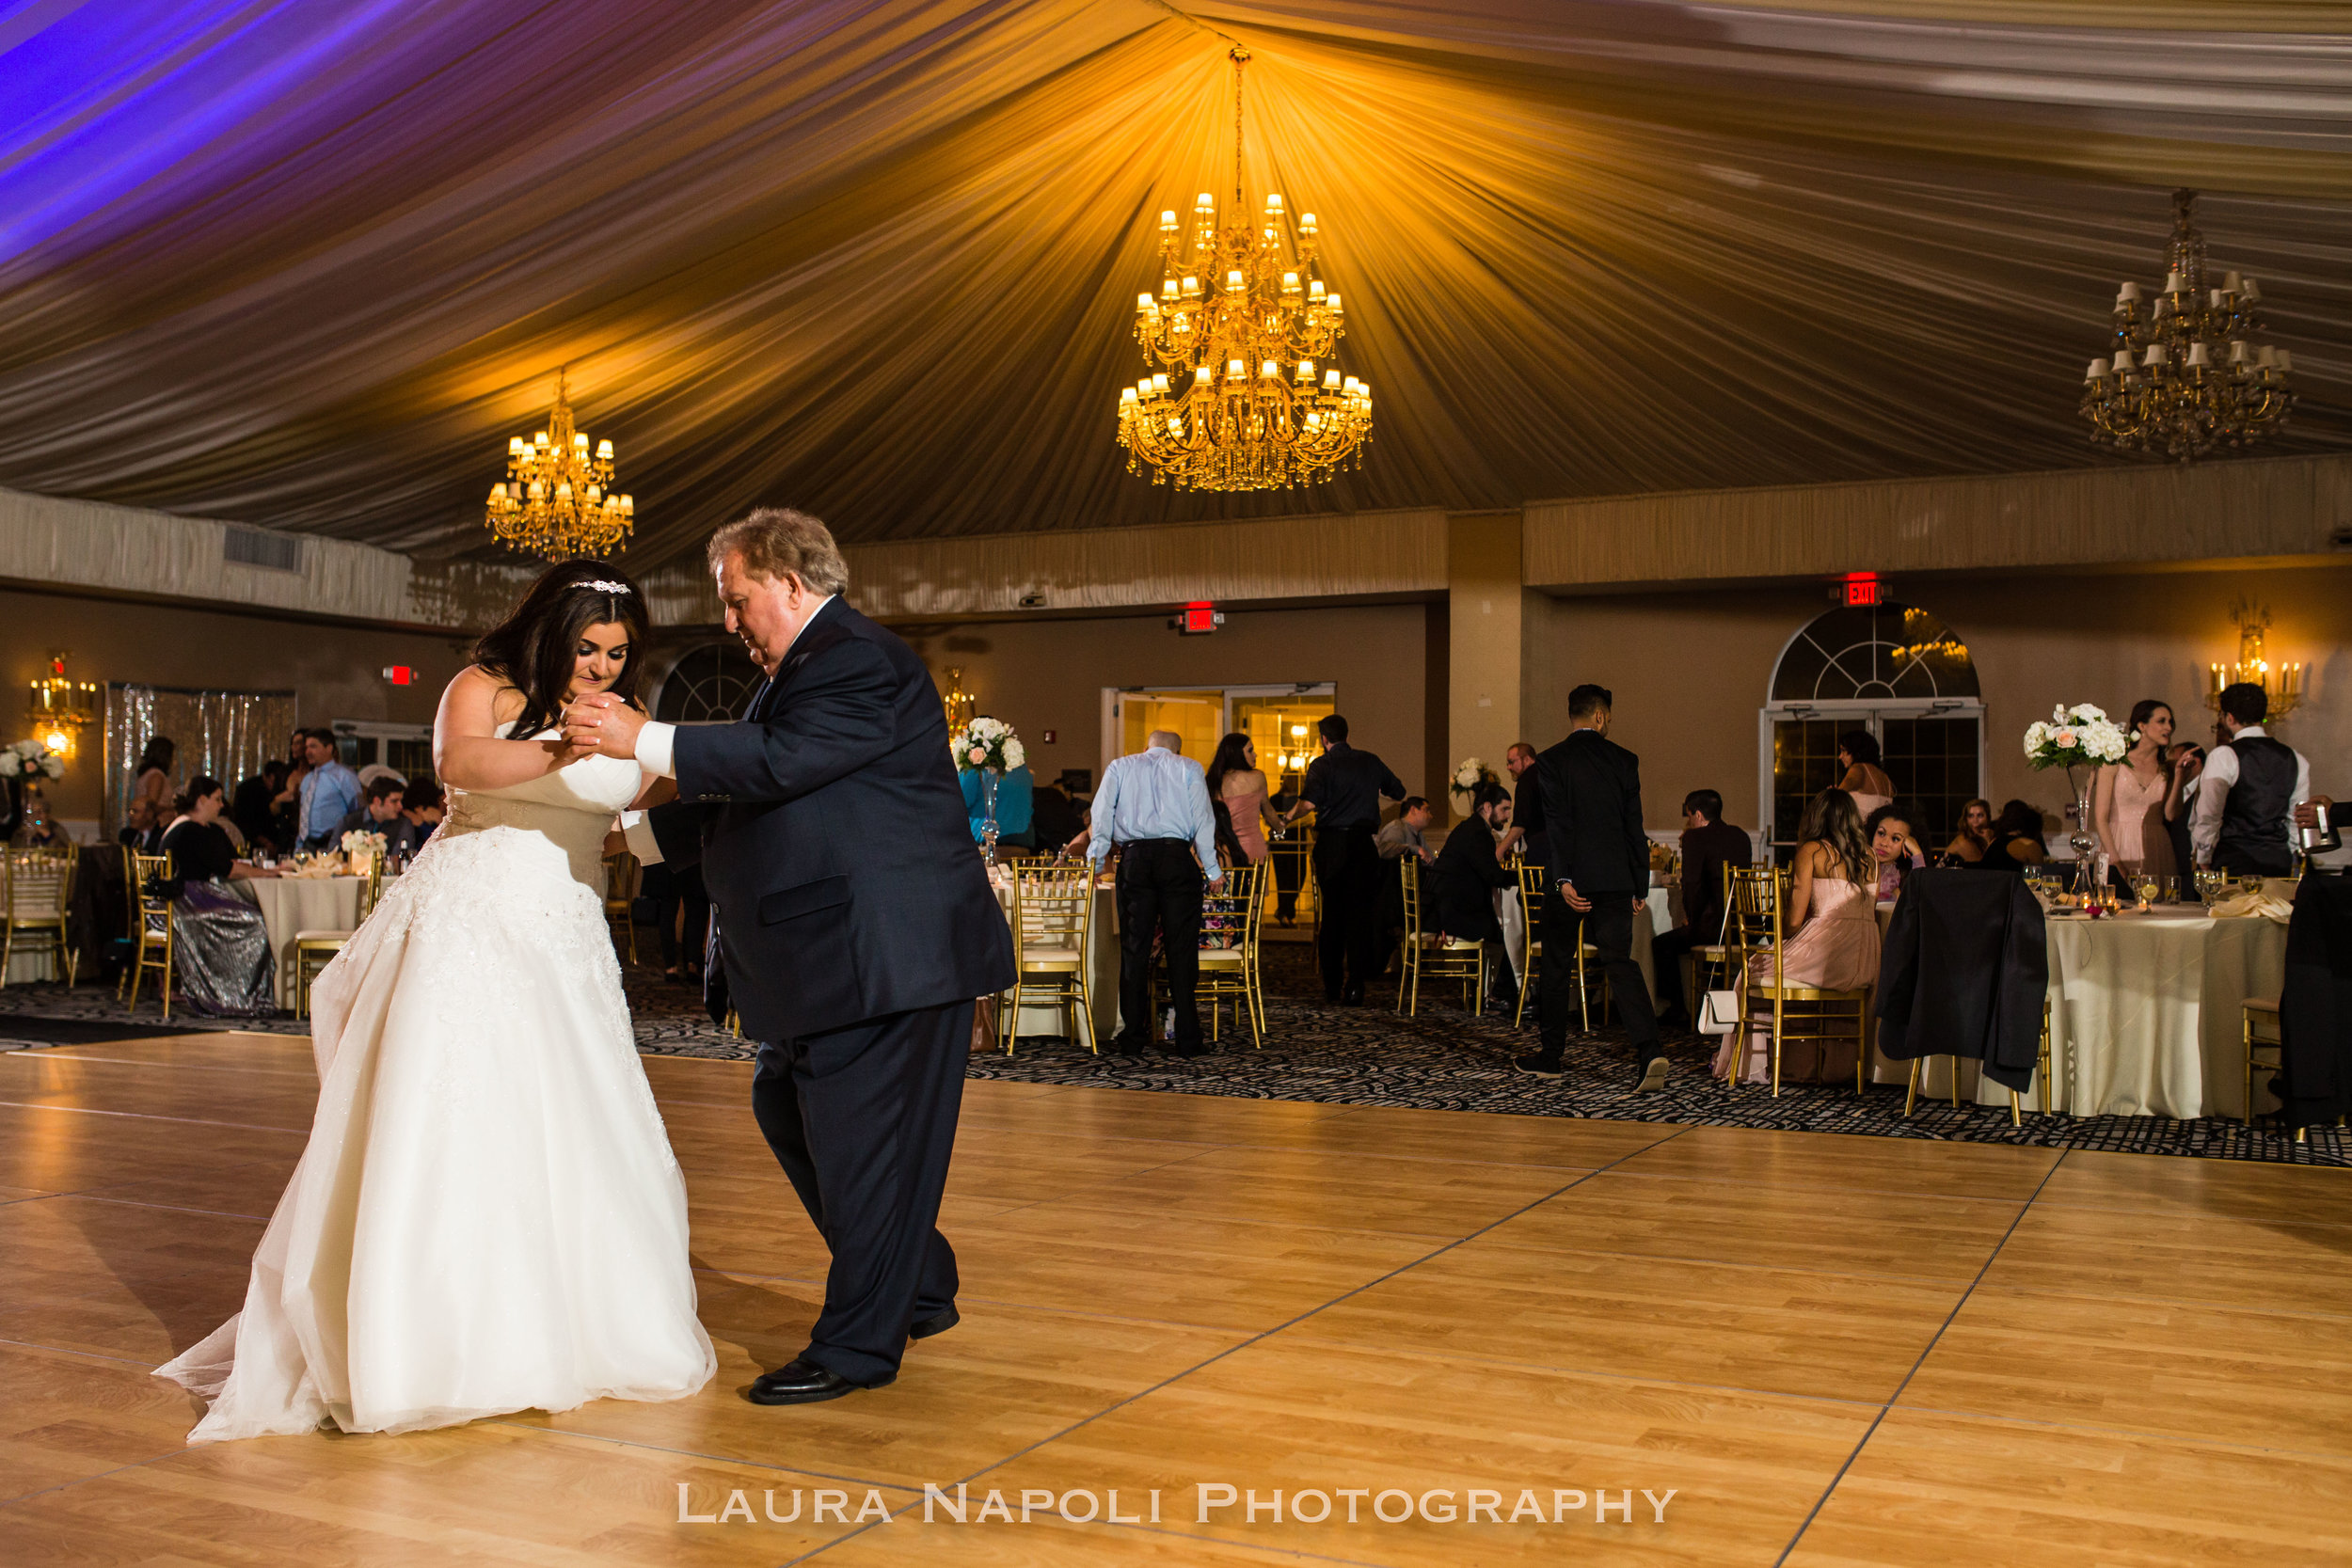 crowneplazacherryhillnjweddingphotographer-36.jpg